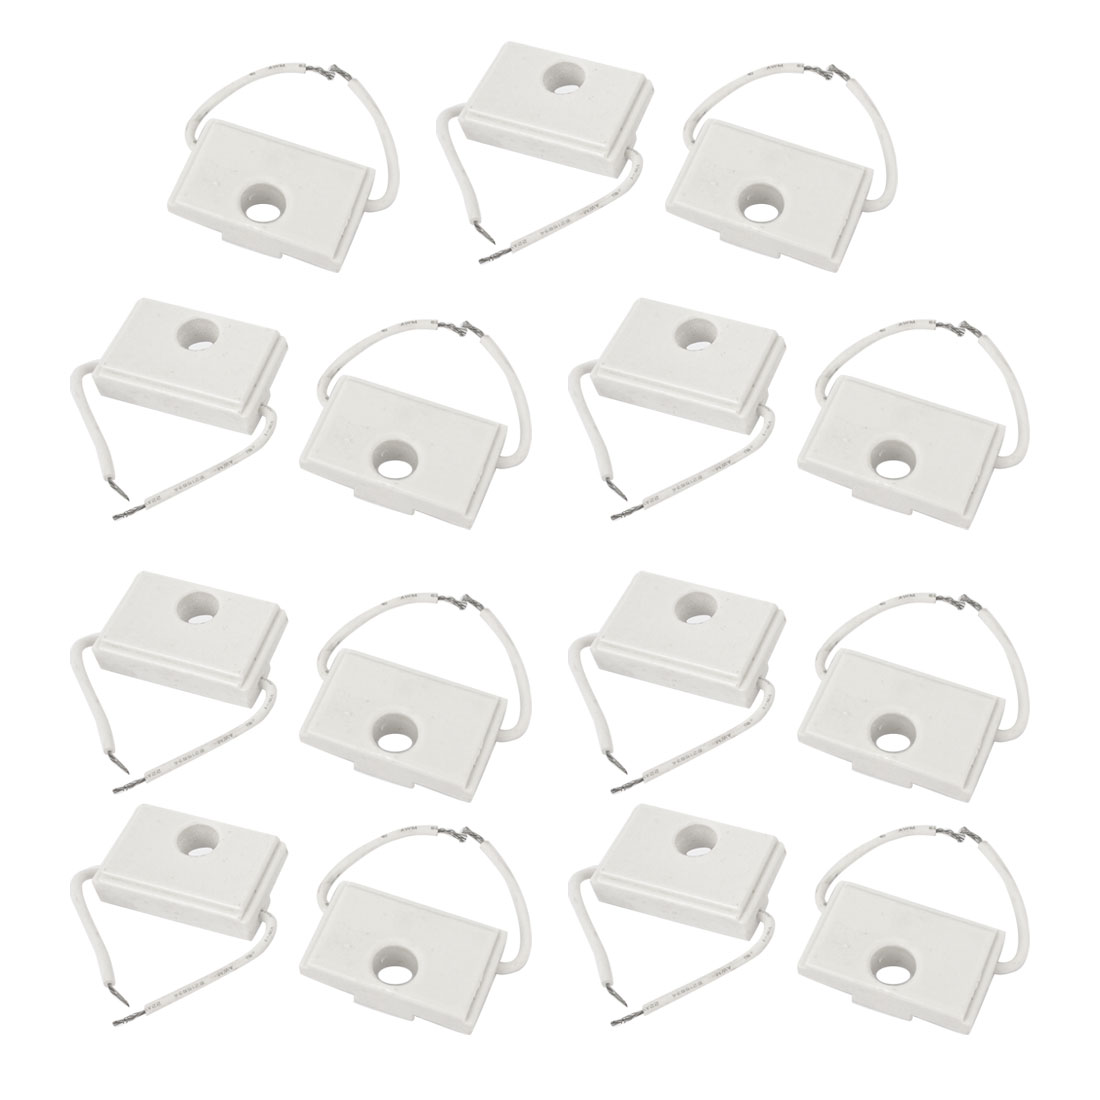 Wire Lead 7W 9.6K ohm 2% Tolerance White Rectangle Ceramic Cement Power Resistor 15 Pcs